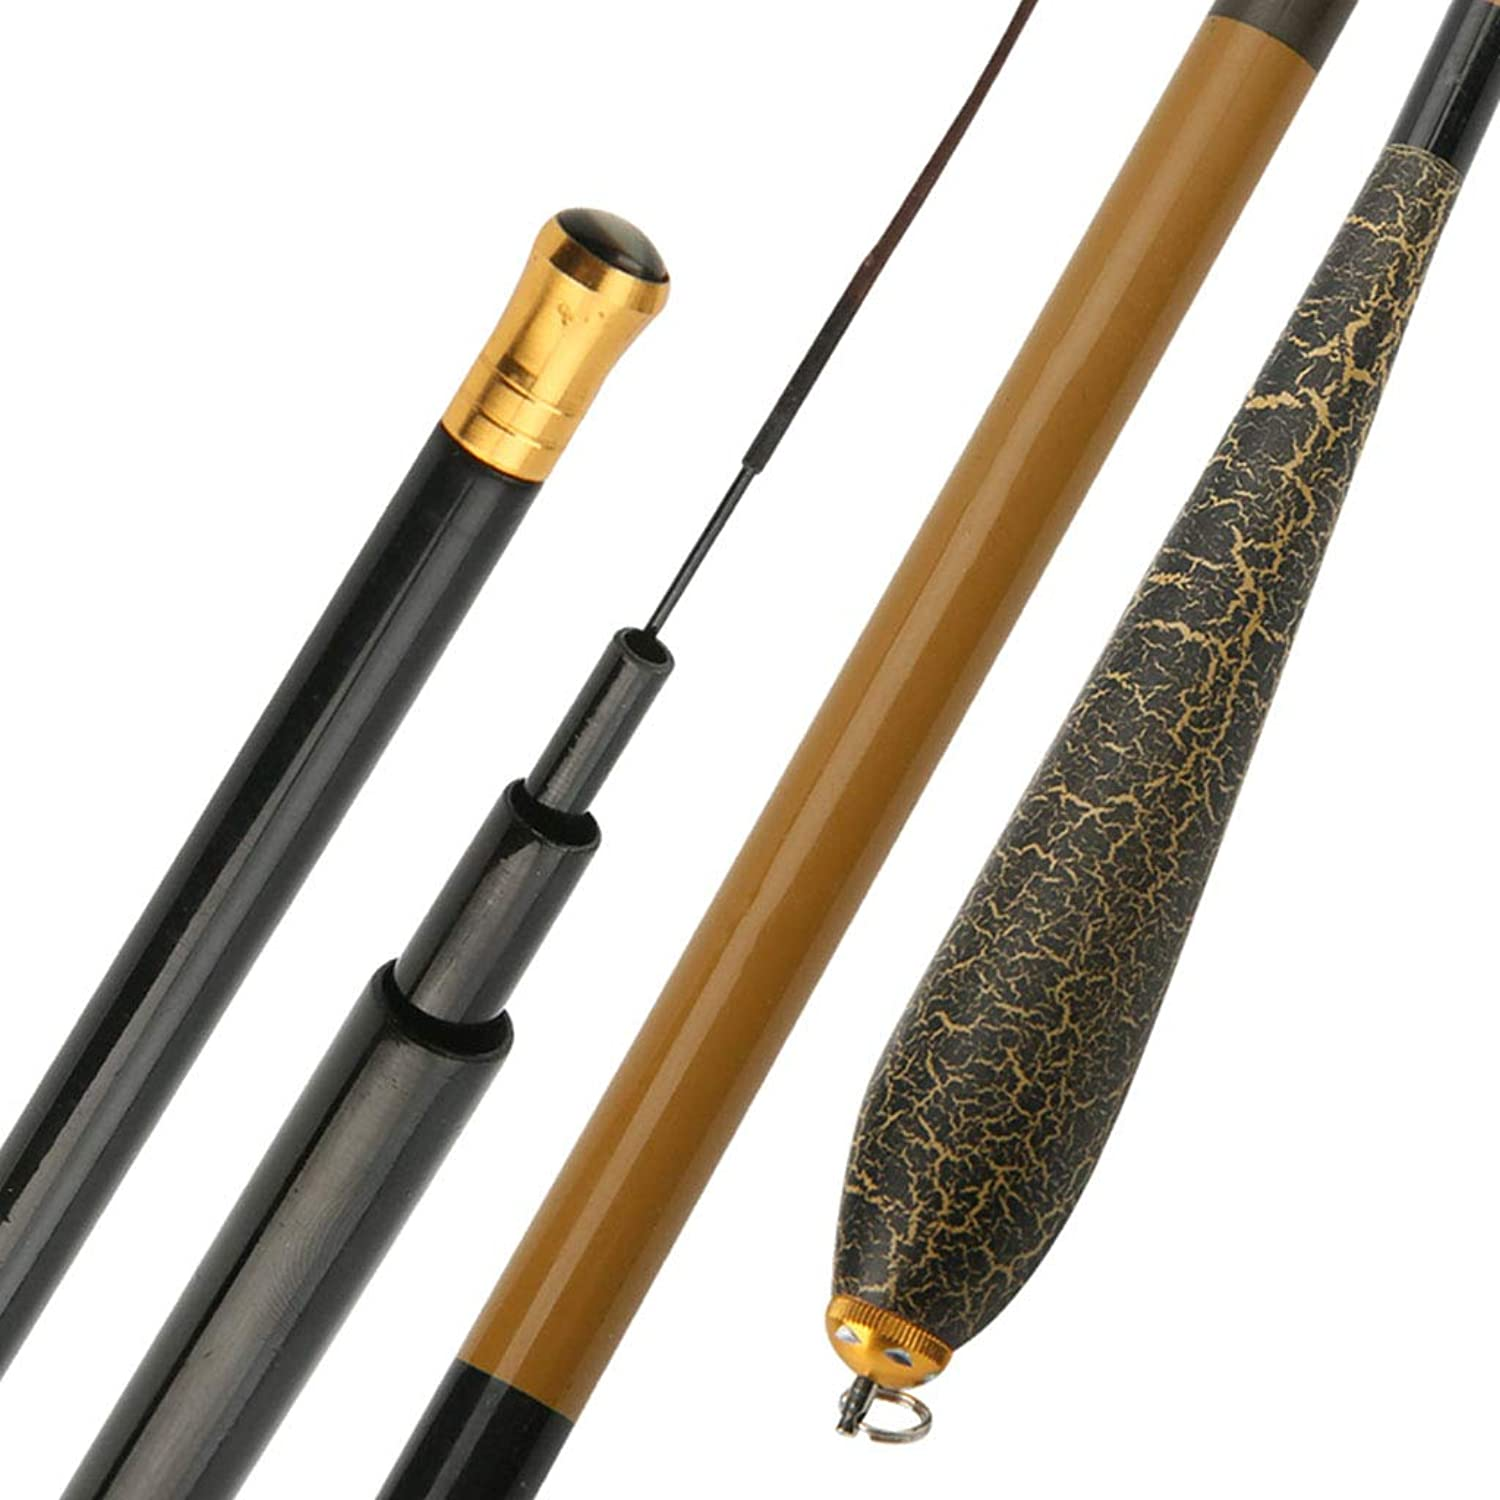 Fishing Rod Imported Carbon Fiber 19 Adjustable Ultra Light and Super Hard 1 to 3 Meters Long Portable Retractable Fishing Rod